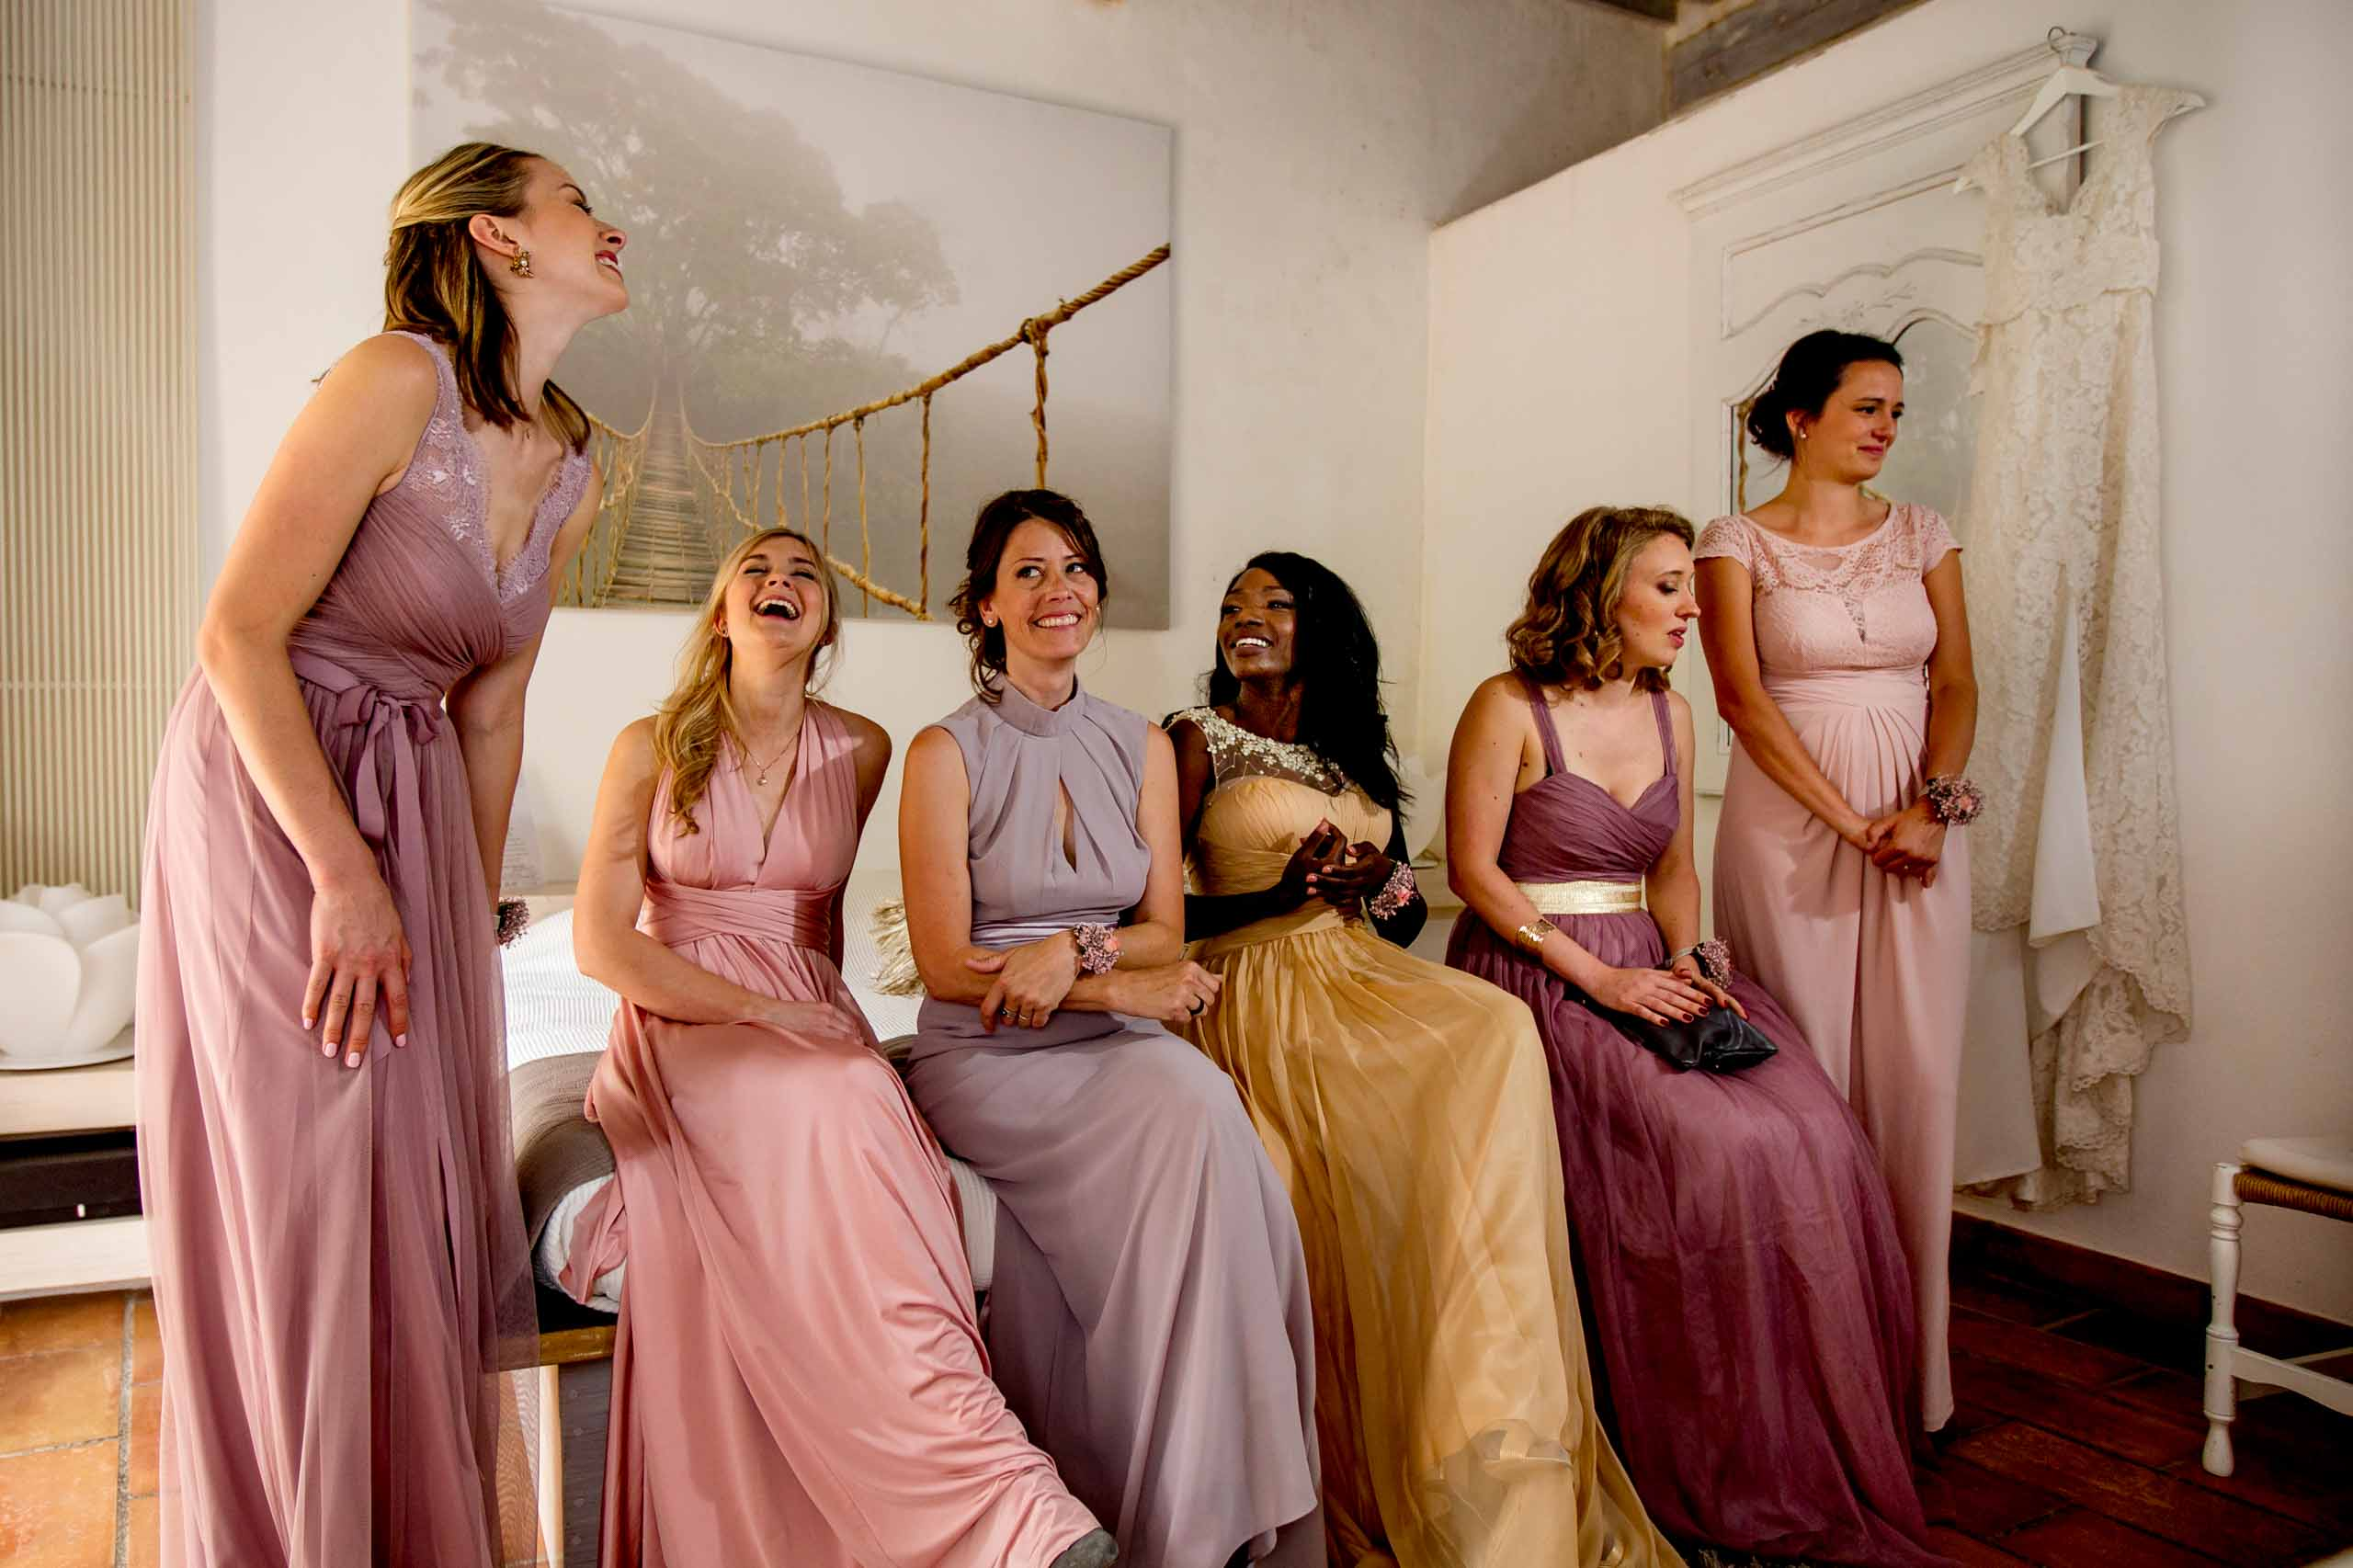 Beautiful bridesmaids laughing together with bride getting ready for her Chateau Zen wedding in the South of France.